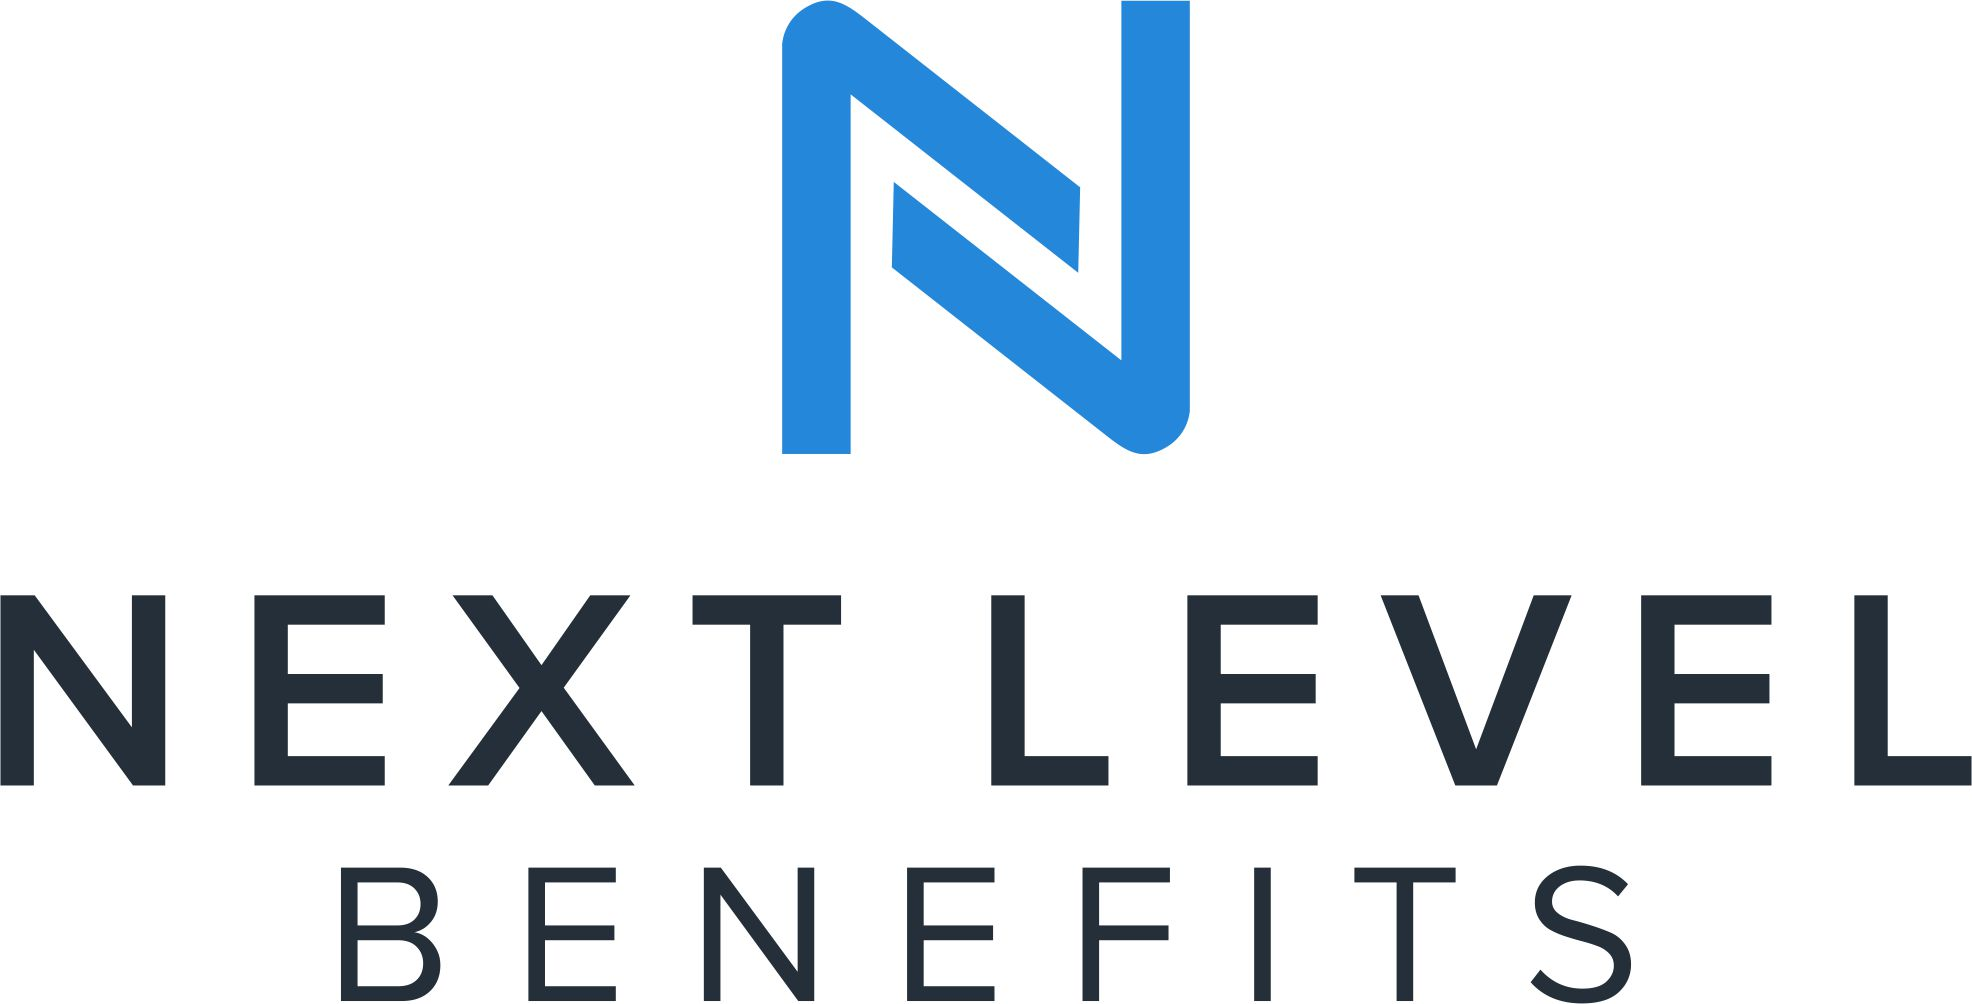 Next Level Benefits Certified by the Women's Business Enterprise National Council (WBENC)